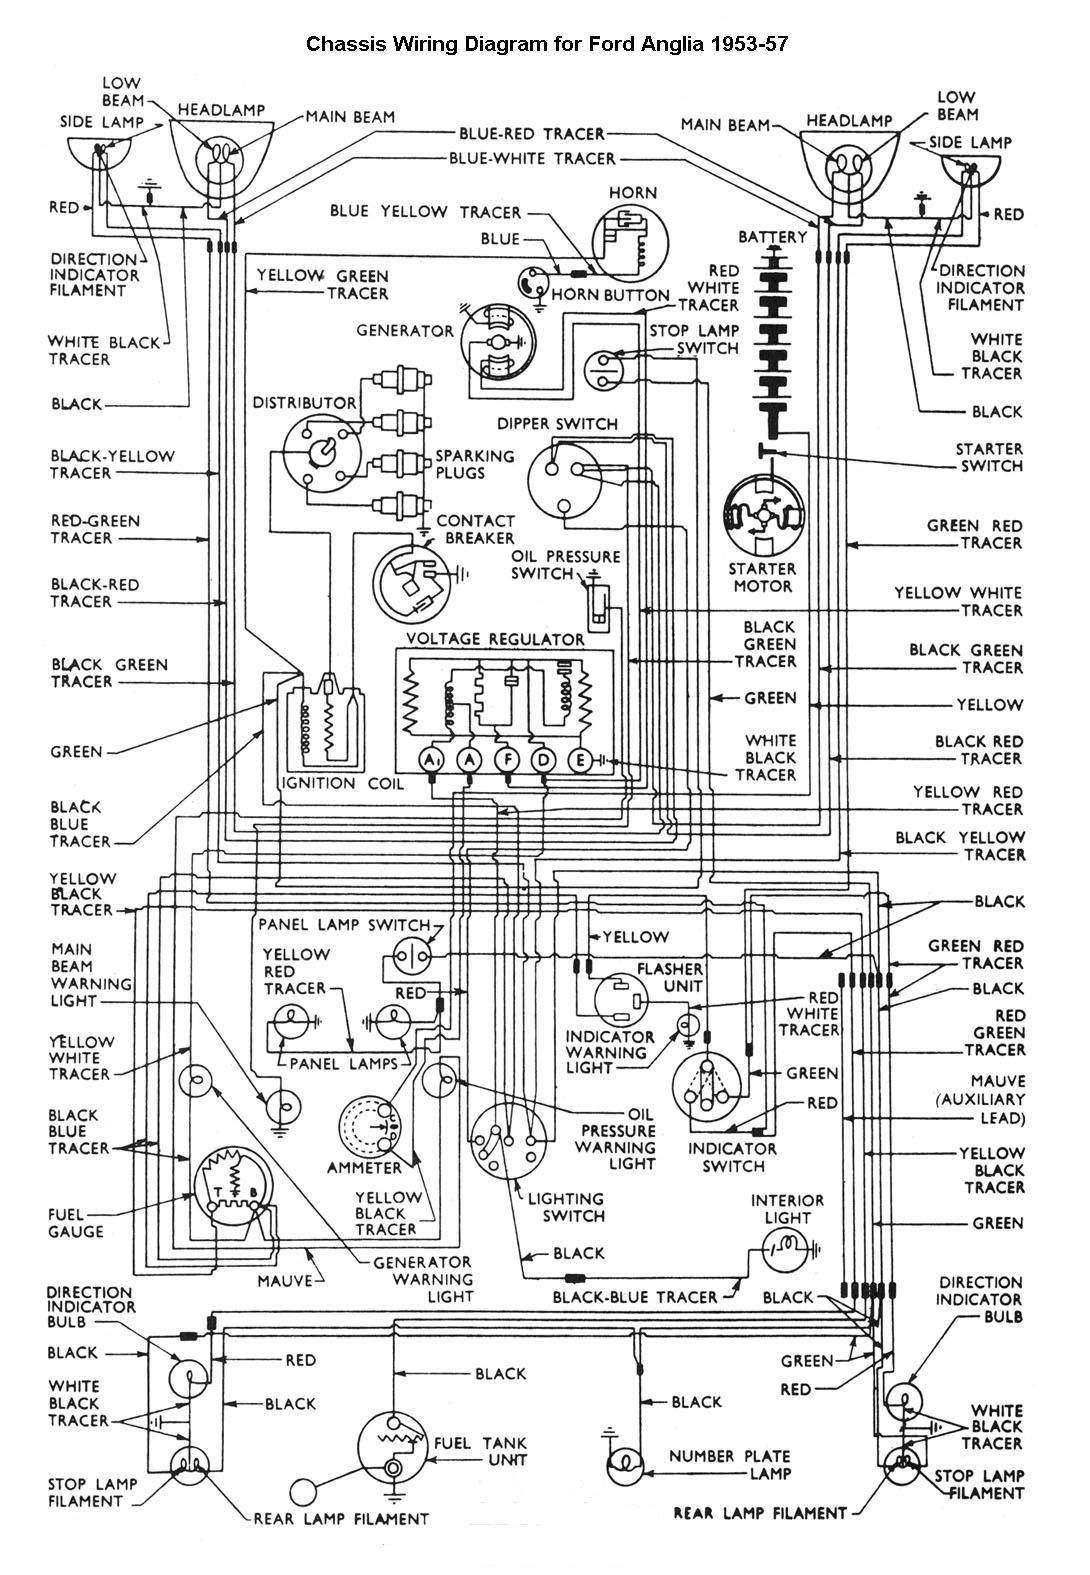 small resolution of car wiring diagram mech truck repair cars motor carcar wiring diagram